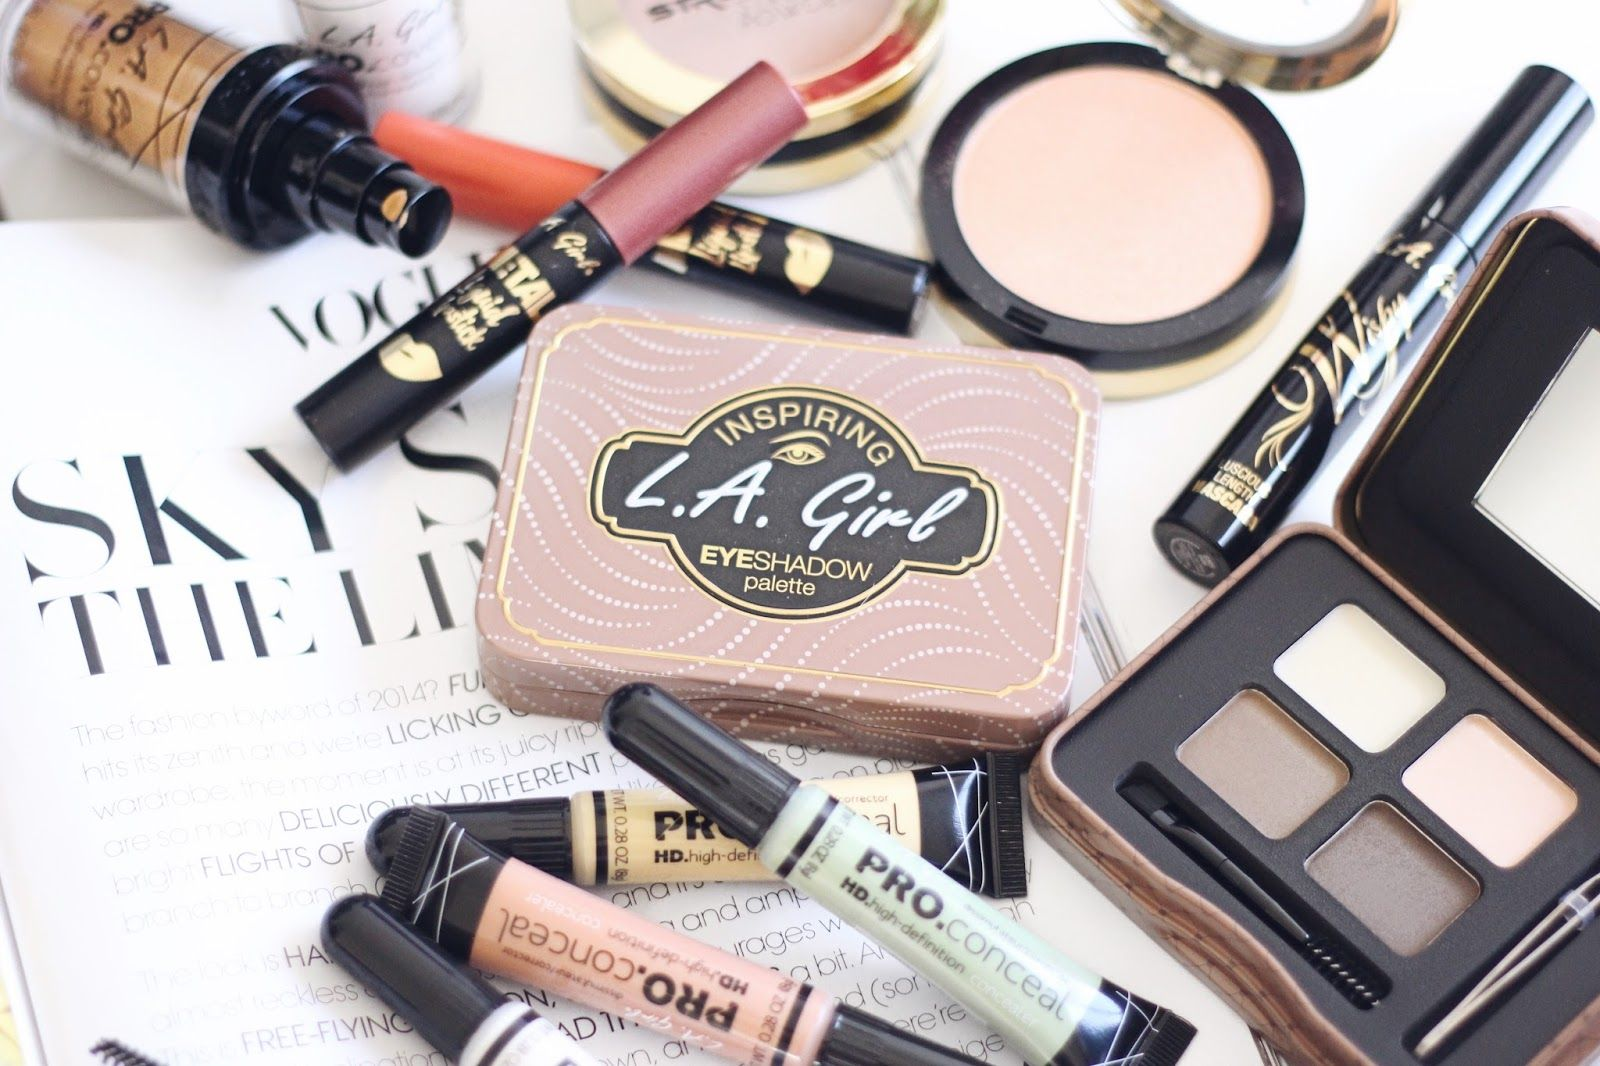 L.A Girl Cosmetics, Makeup and Products in Pakistan